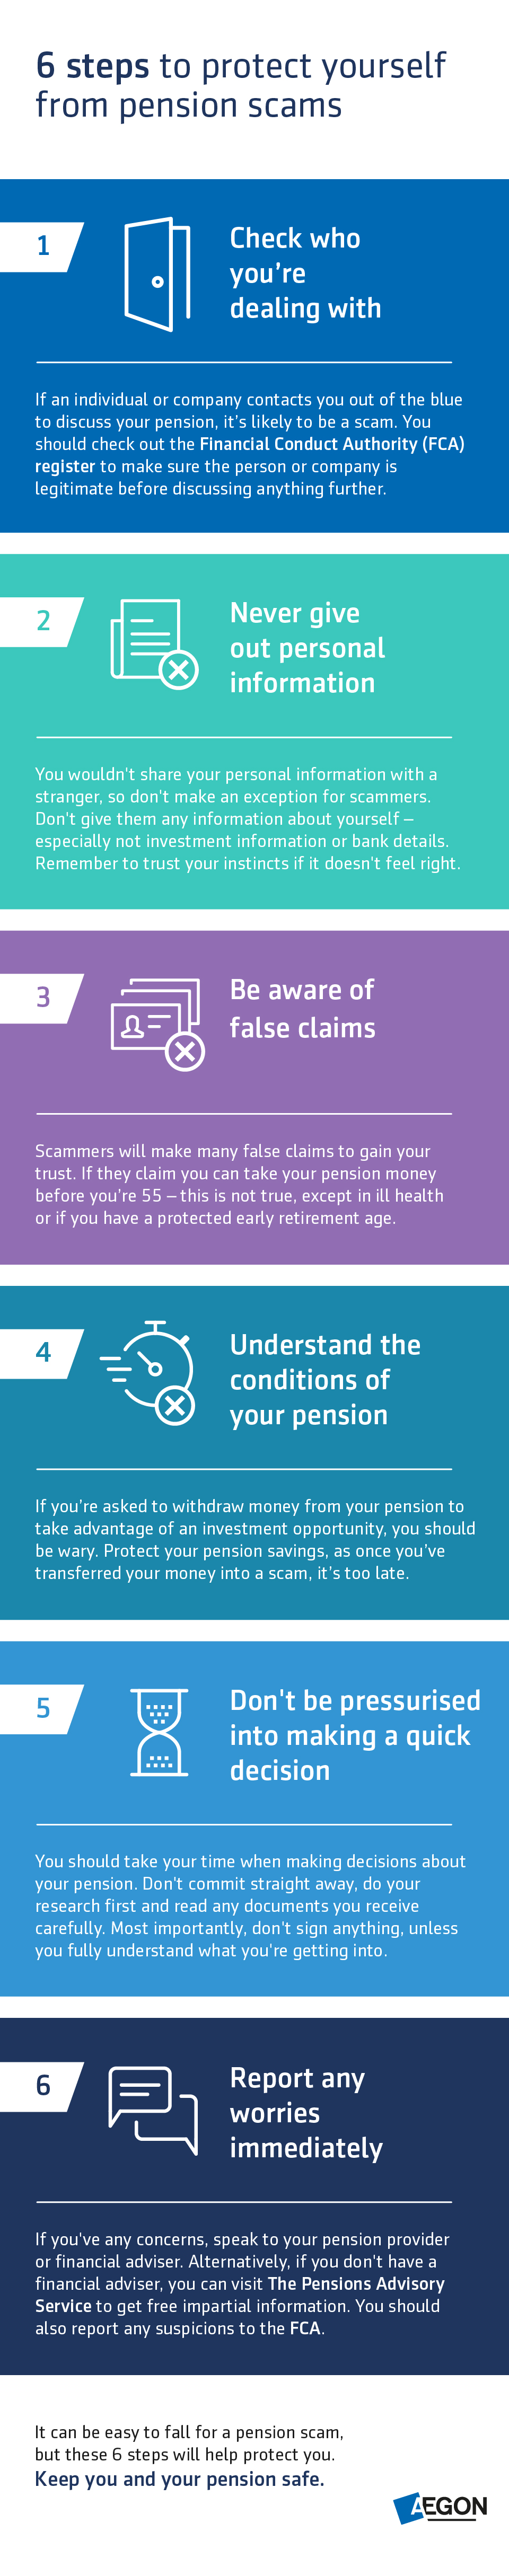 pension_scam_infographic_960.jpg